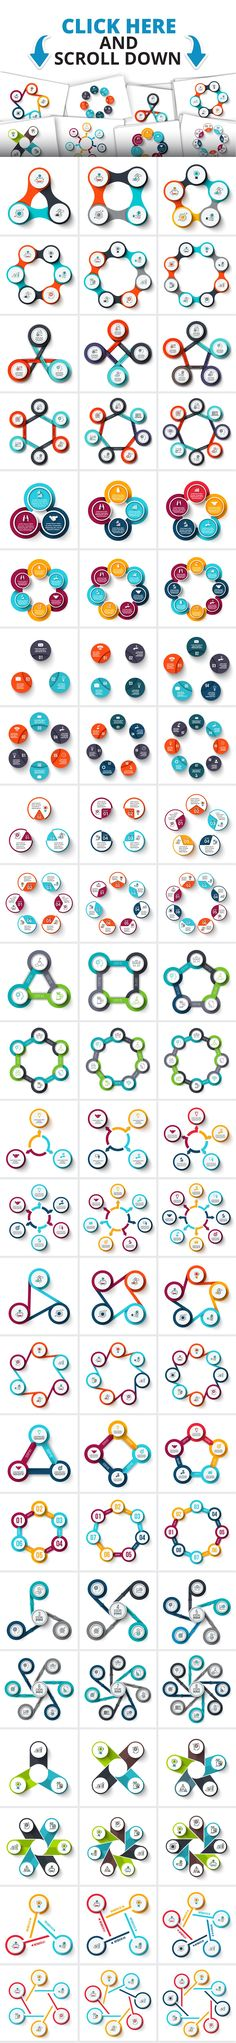 Circle infographic templates by Abert